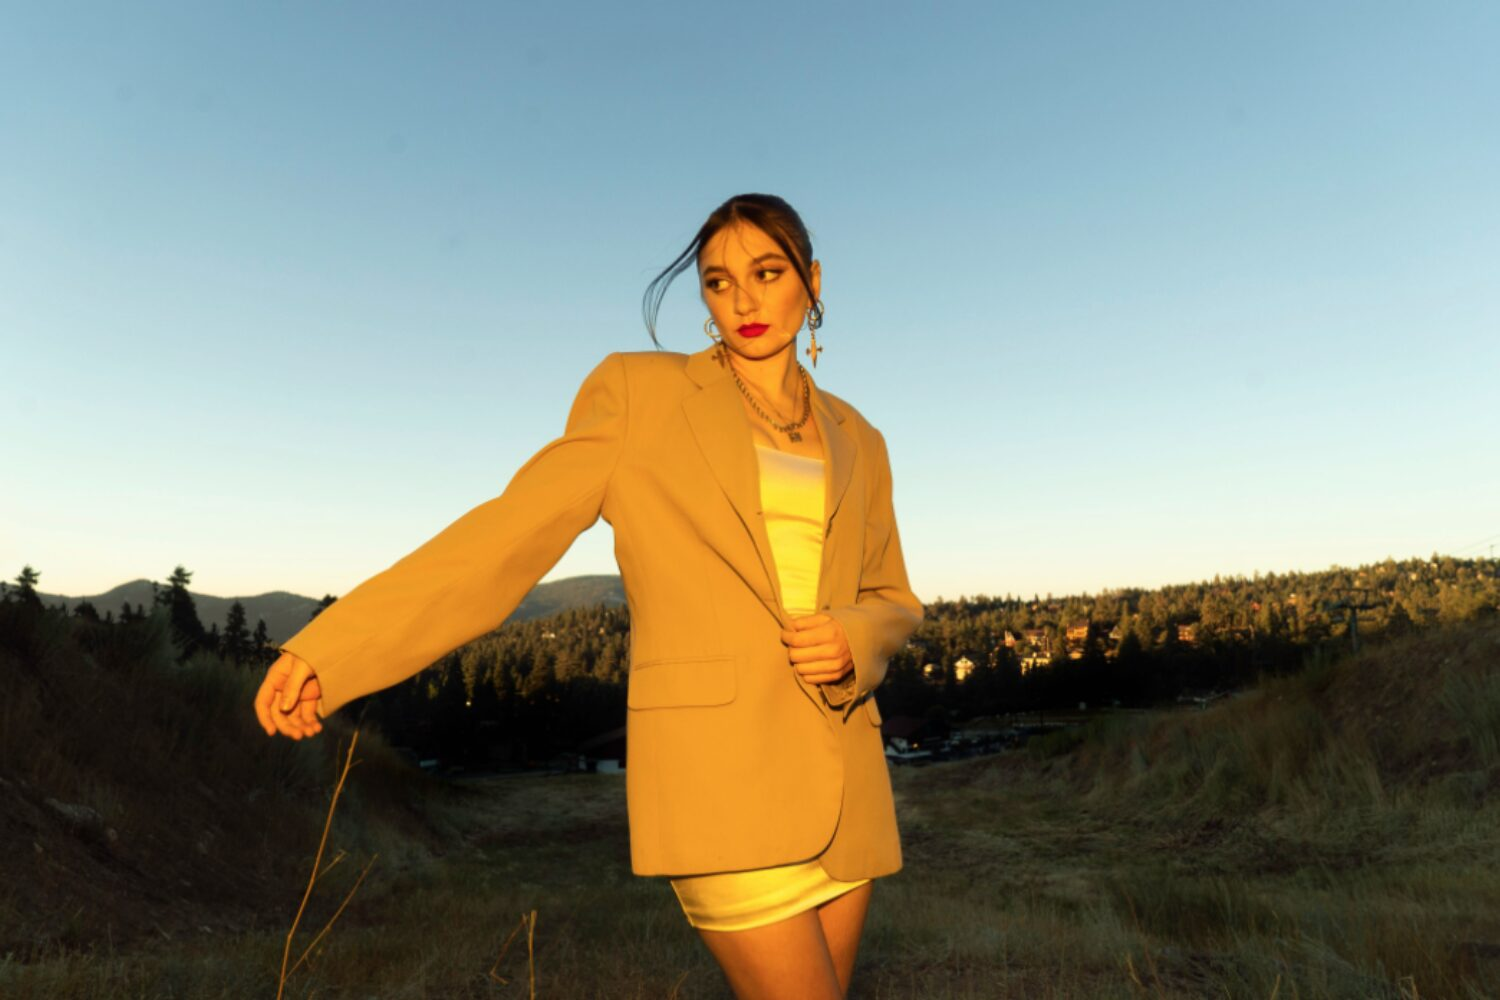 Daya unveils new track 'First Time'